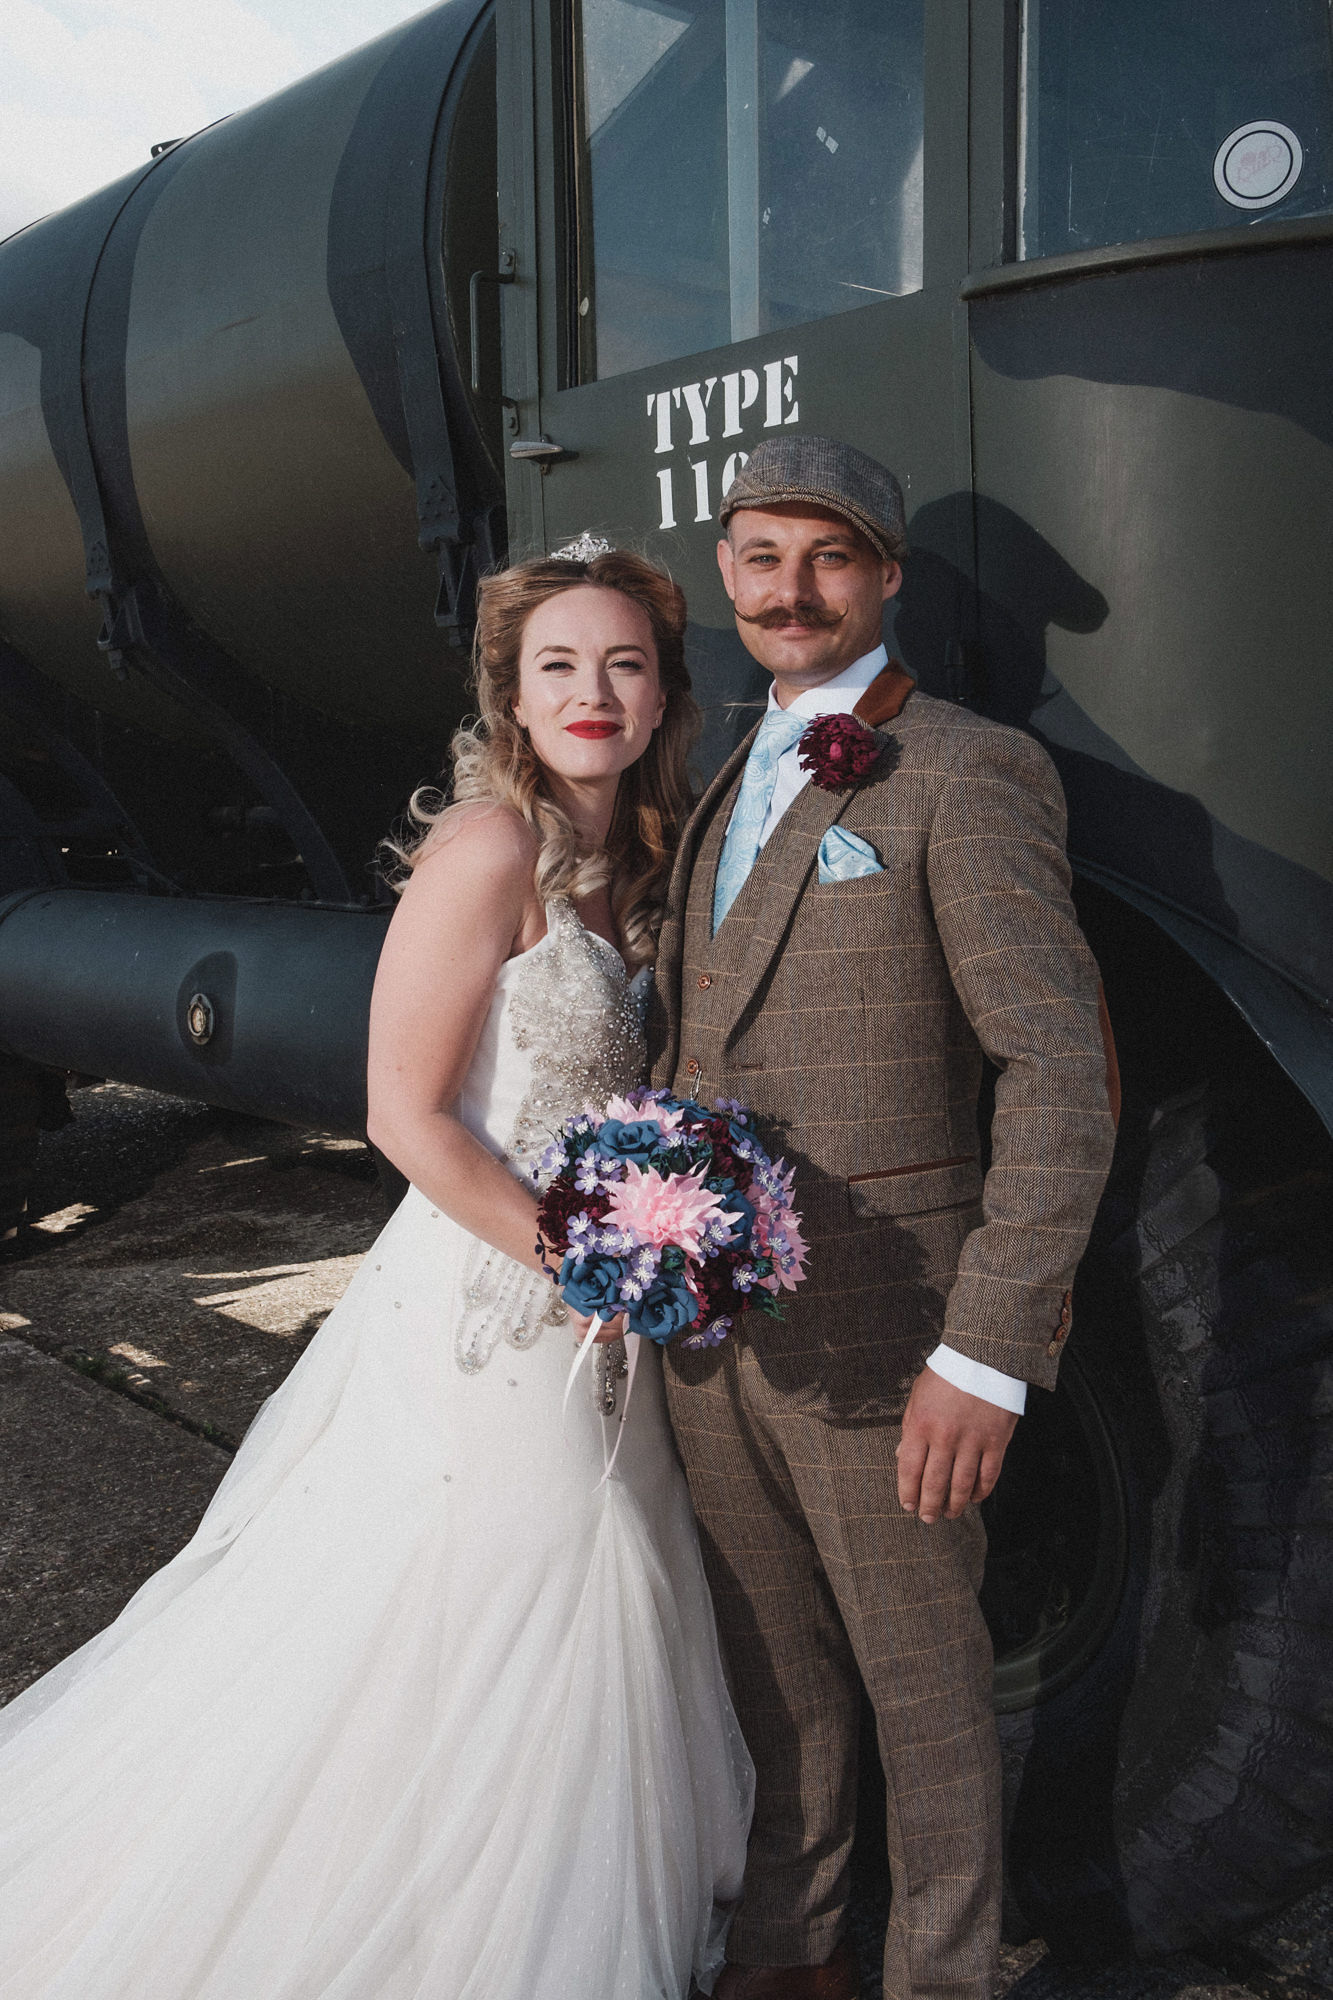 Heritage Aviation Wedding, Second and Wedding Dress, 1940s Wedding, Unconventional Wedding, Alternative Wedding, Vintage Wedding